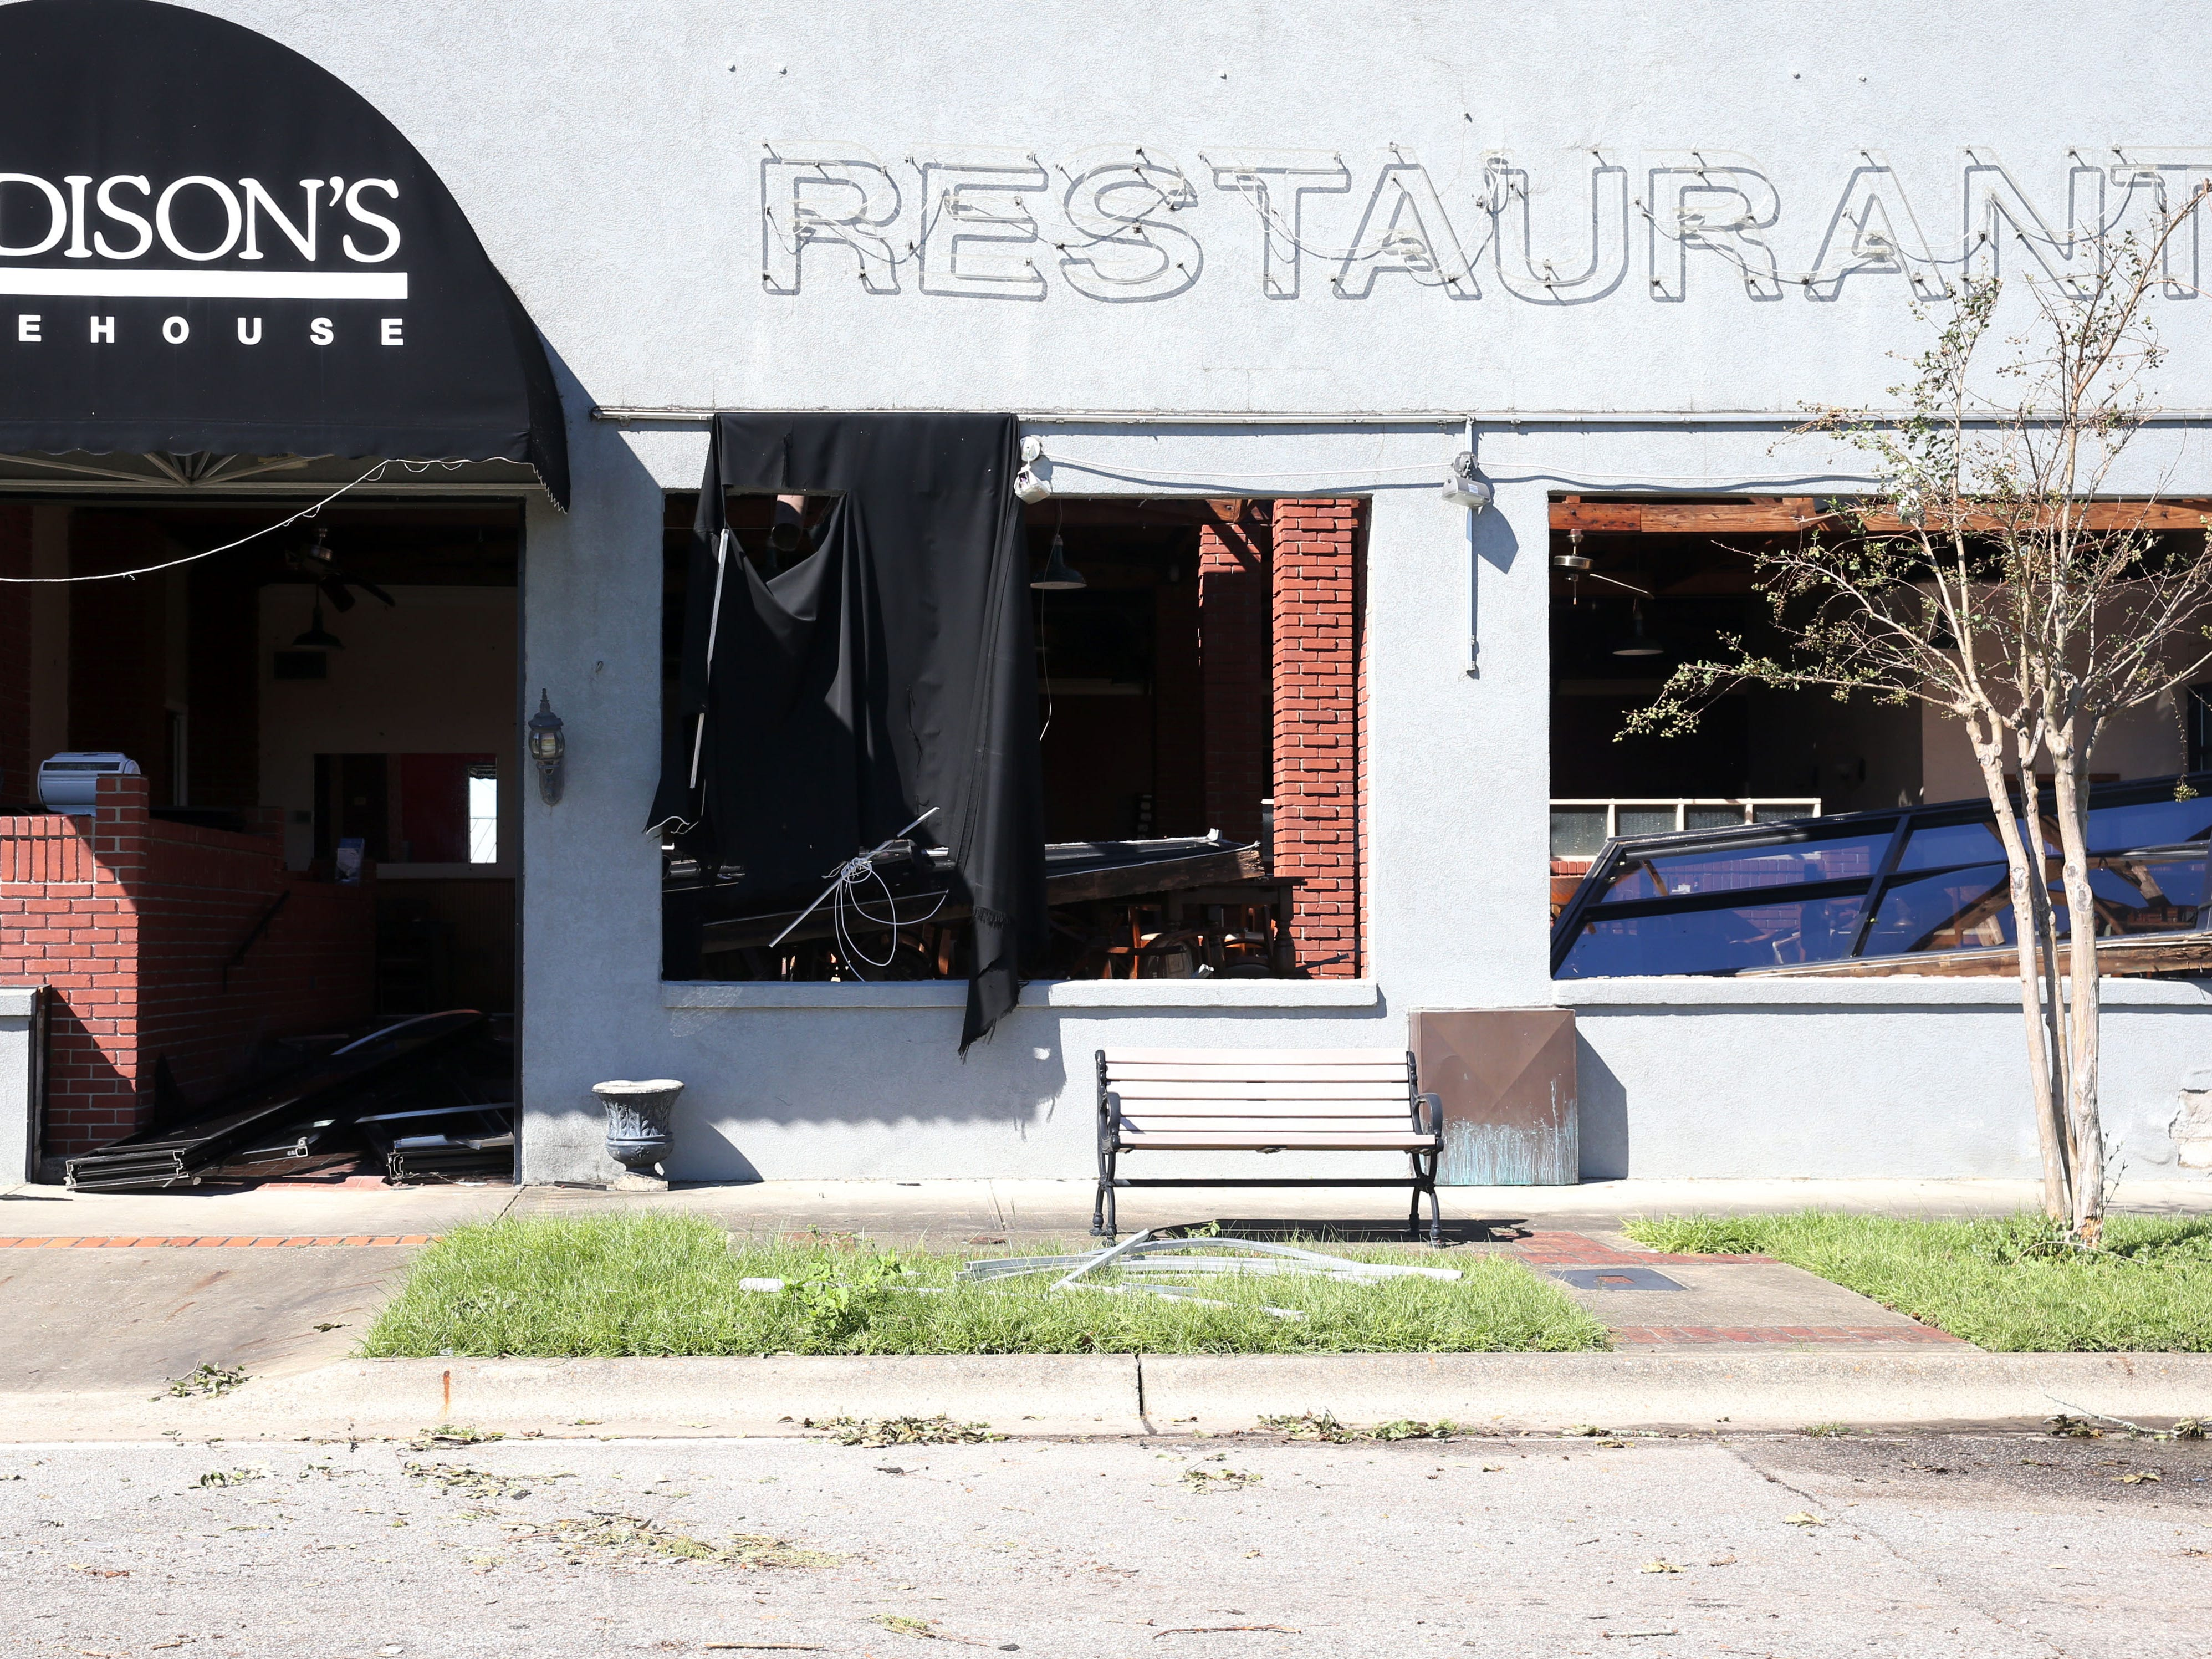 At Madison's Warehouse, a restaurant located in downtown Marianna, Fla. on Friday, Oct. 12, 2018, the restaurant was left in pieces after Hurricane Michael rips through the panhandle.